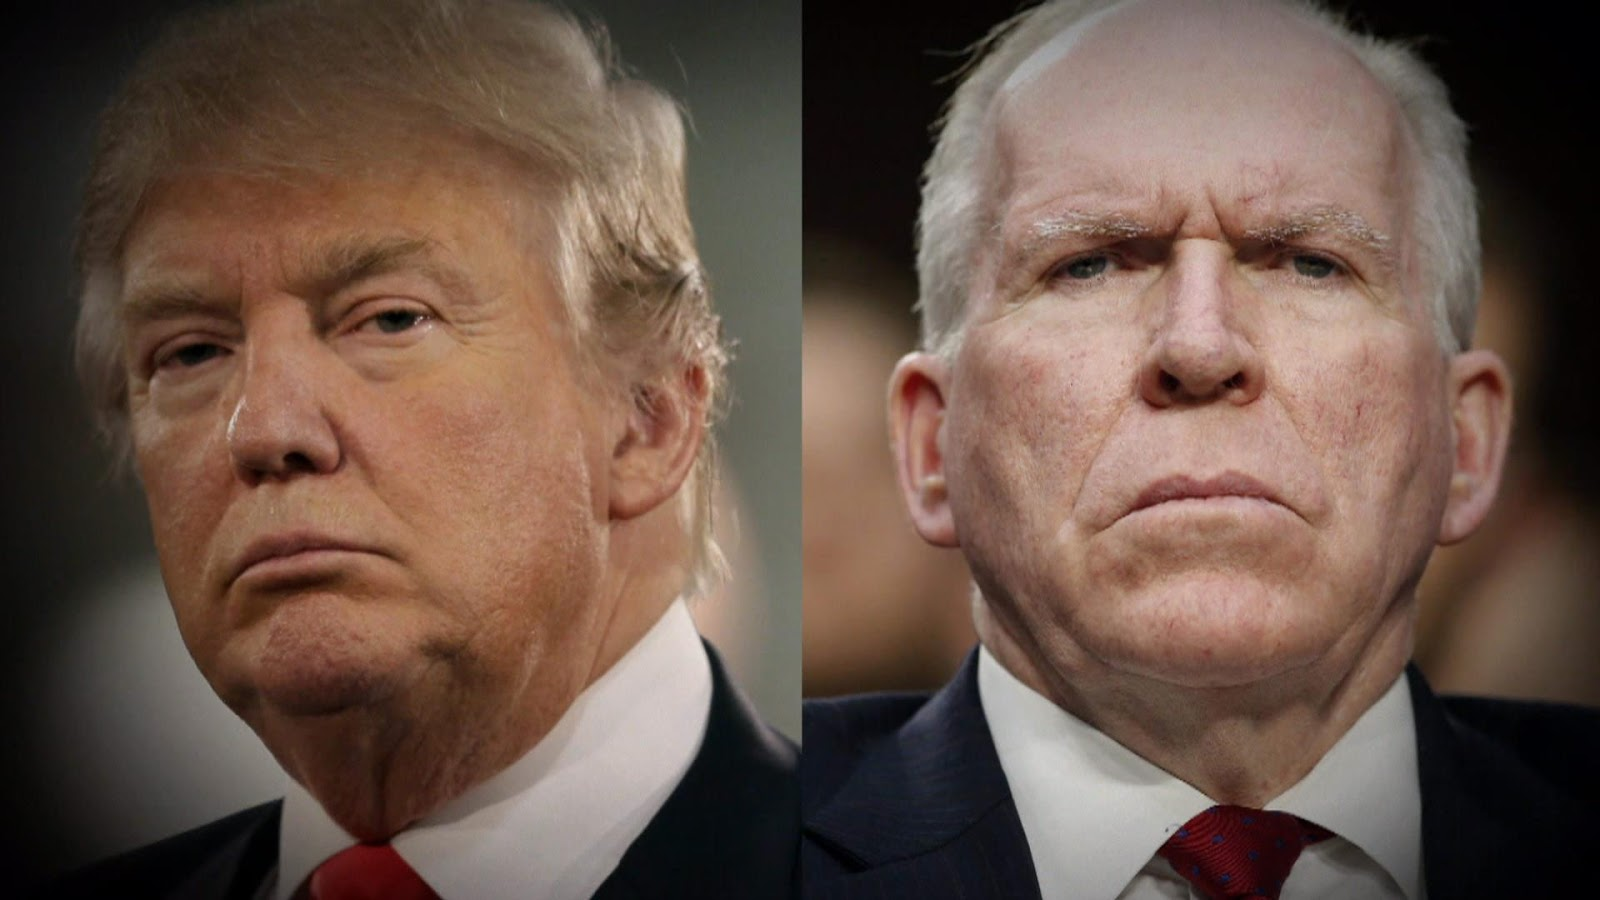 Donald Trump challenges C.I.A. Director John Brennan's truthfulness